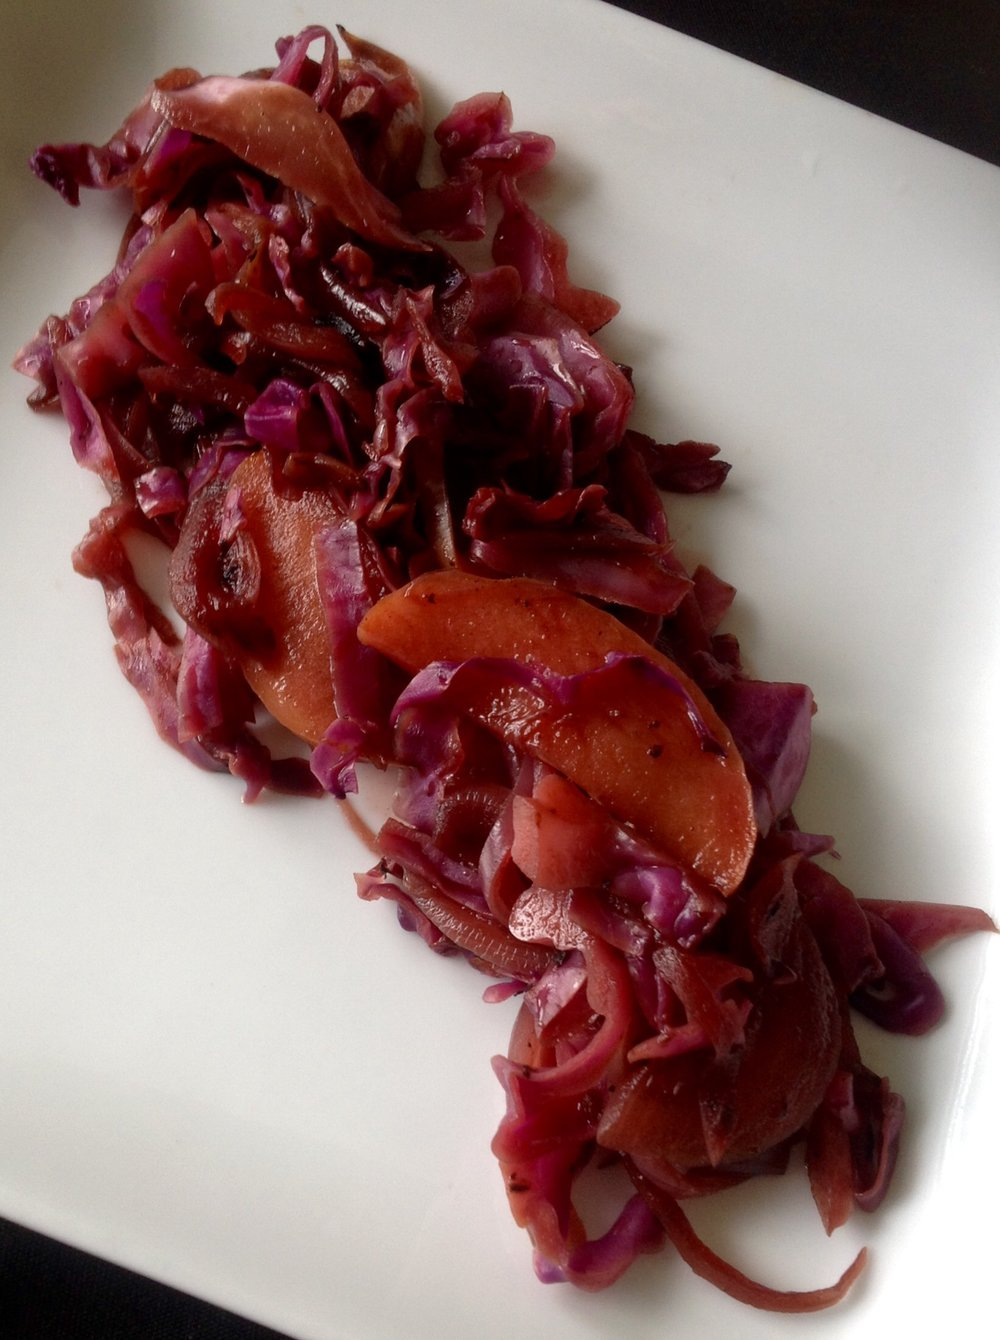 Simple Braised Red Cabbage and Apples